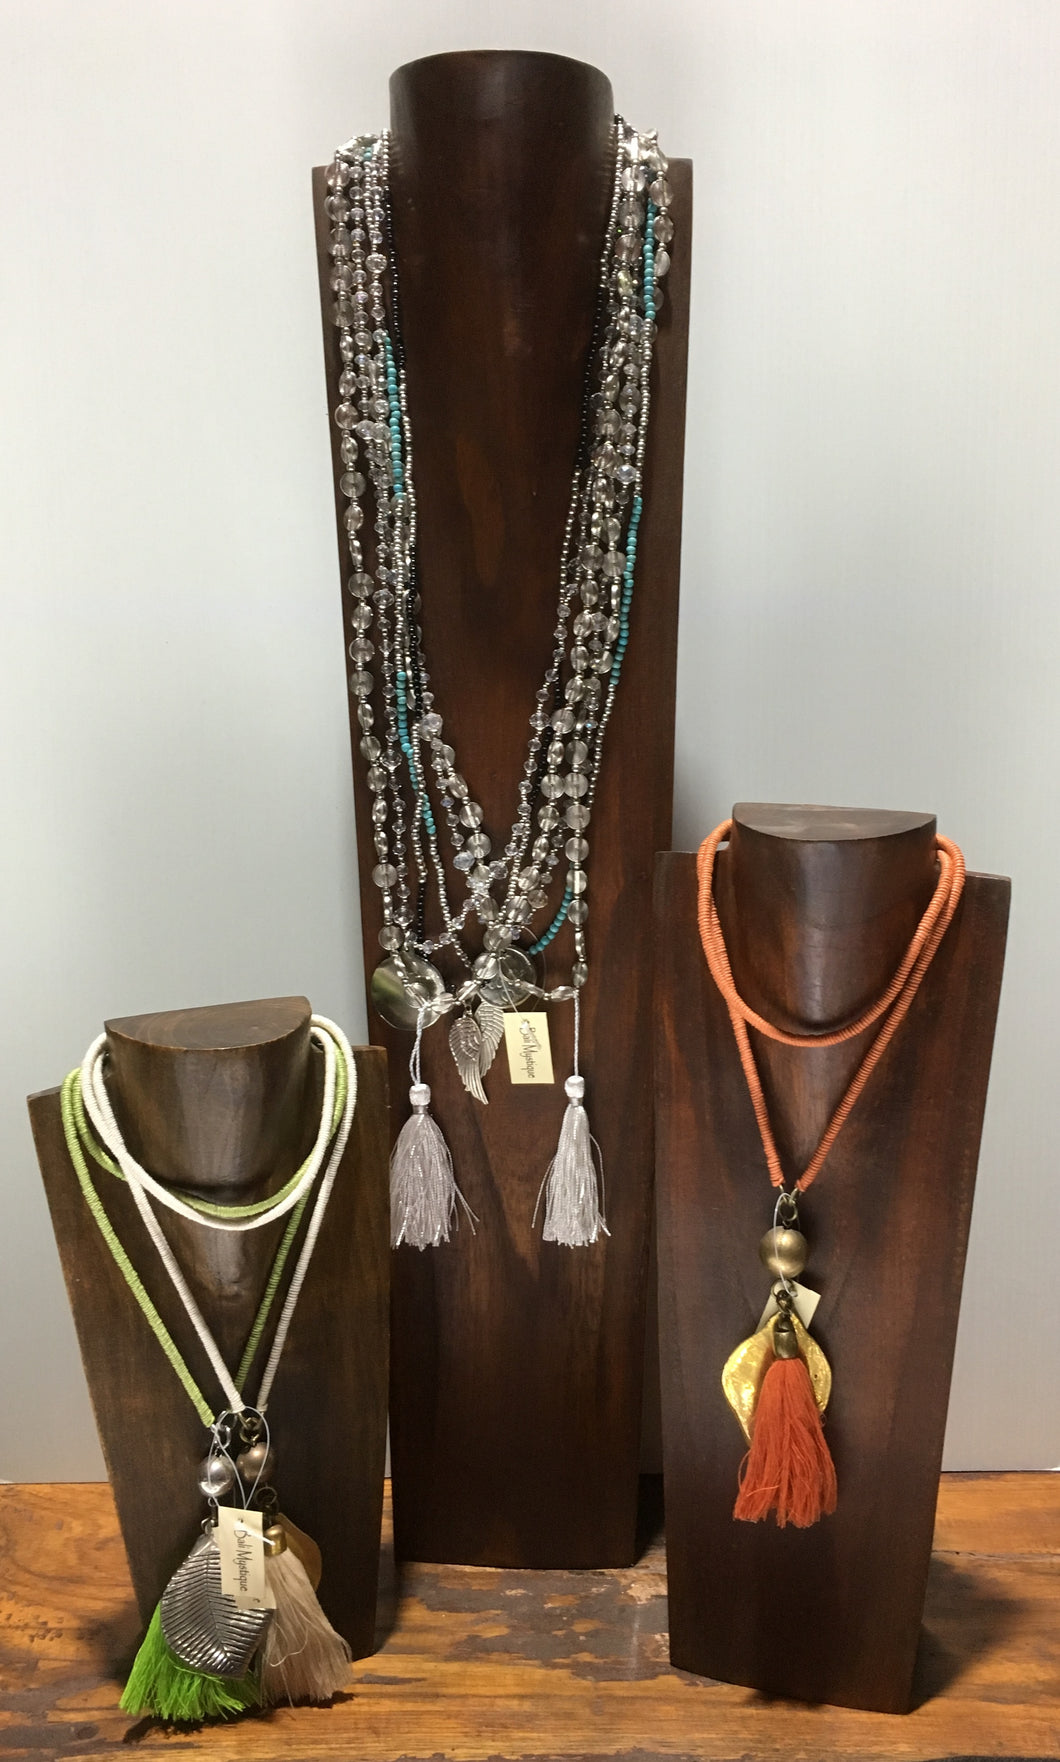 Balinese Stained Timber Jewellery Necklace Display Stands